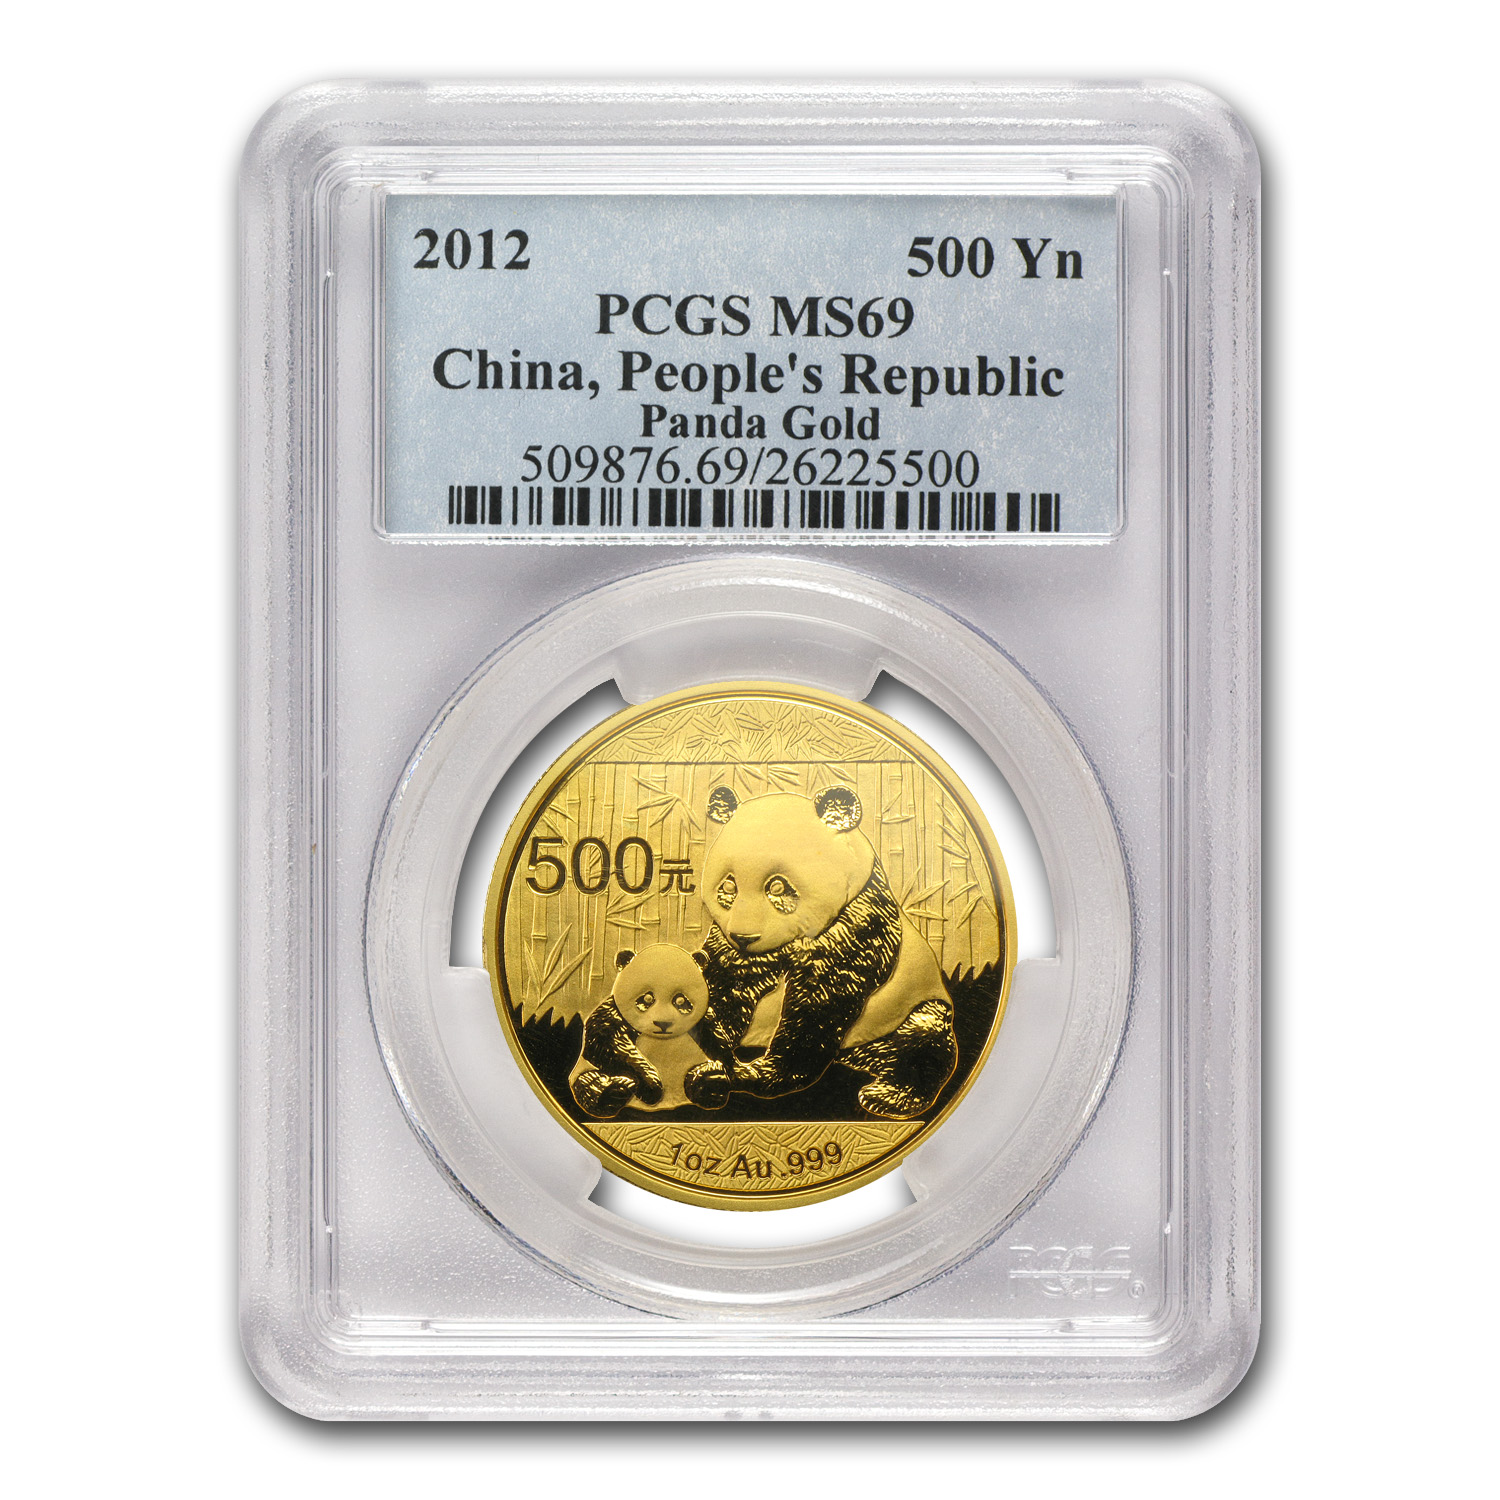 2012 1 oz Gold Chinese Panda MS-69 PCGS